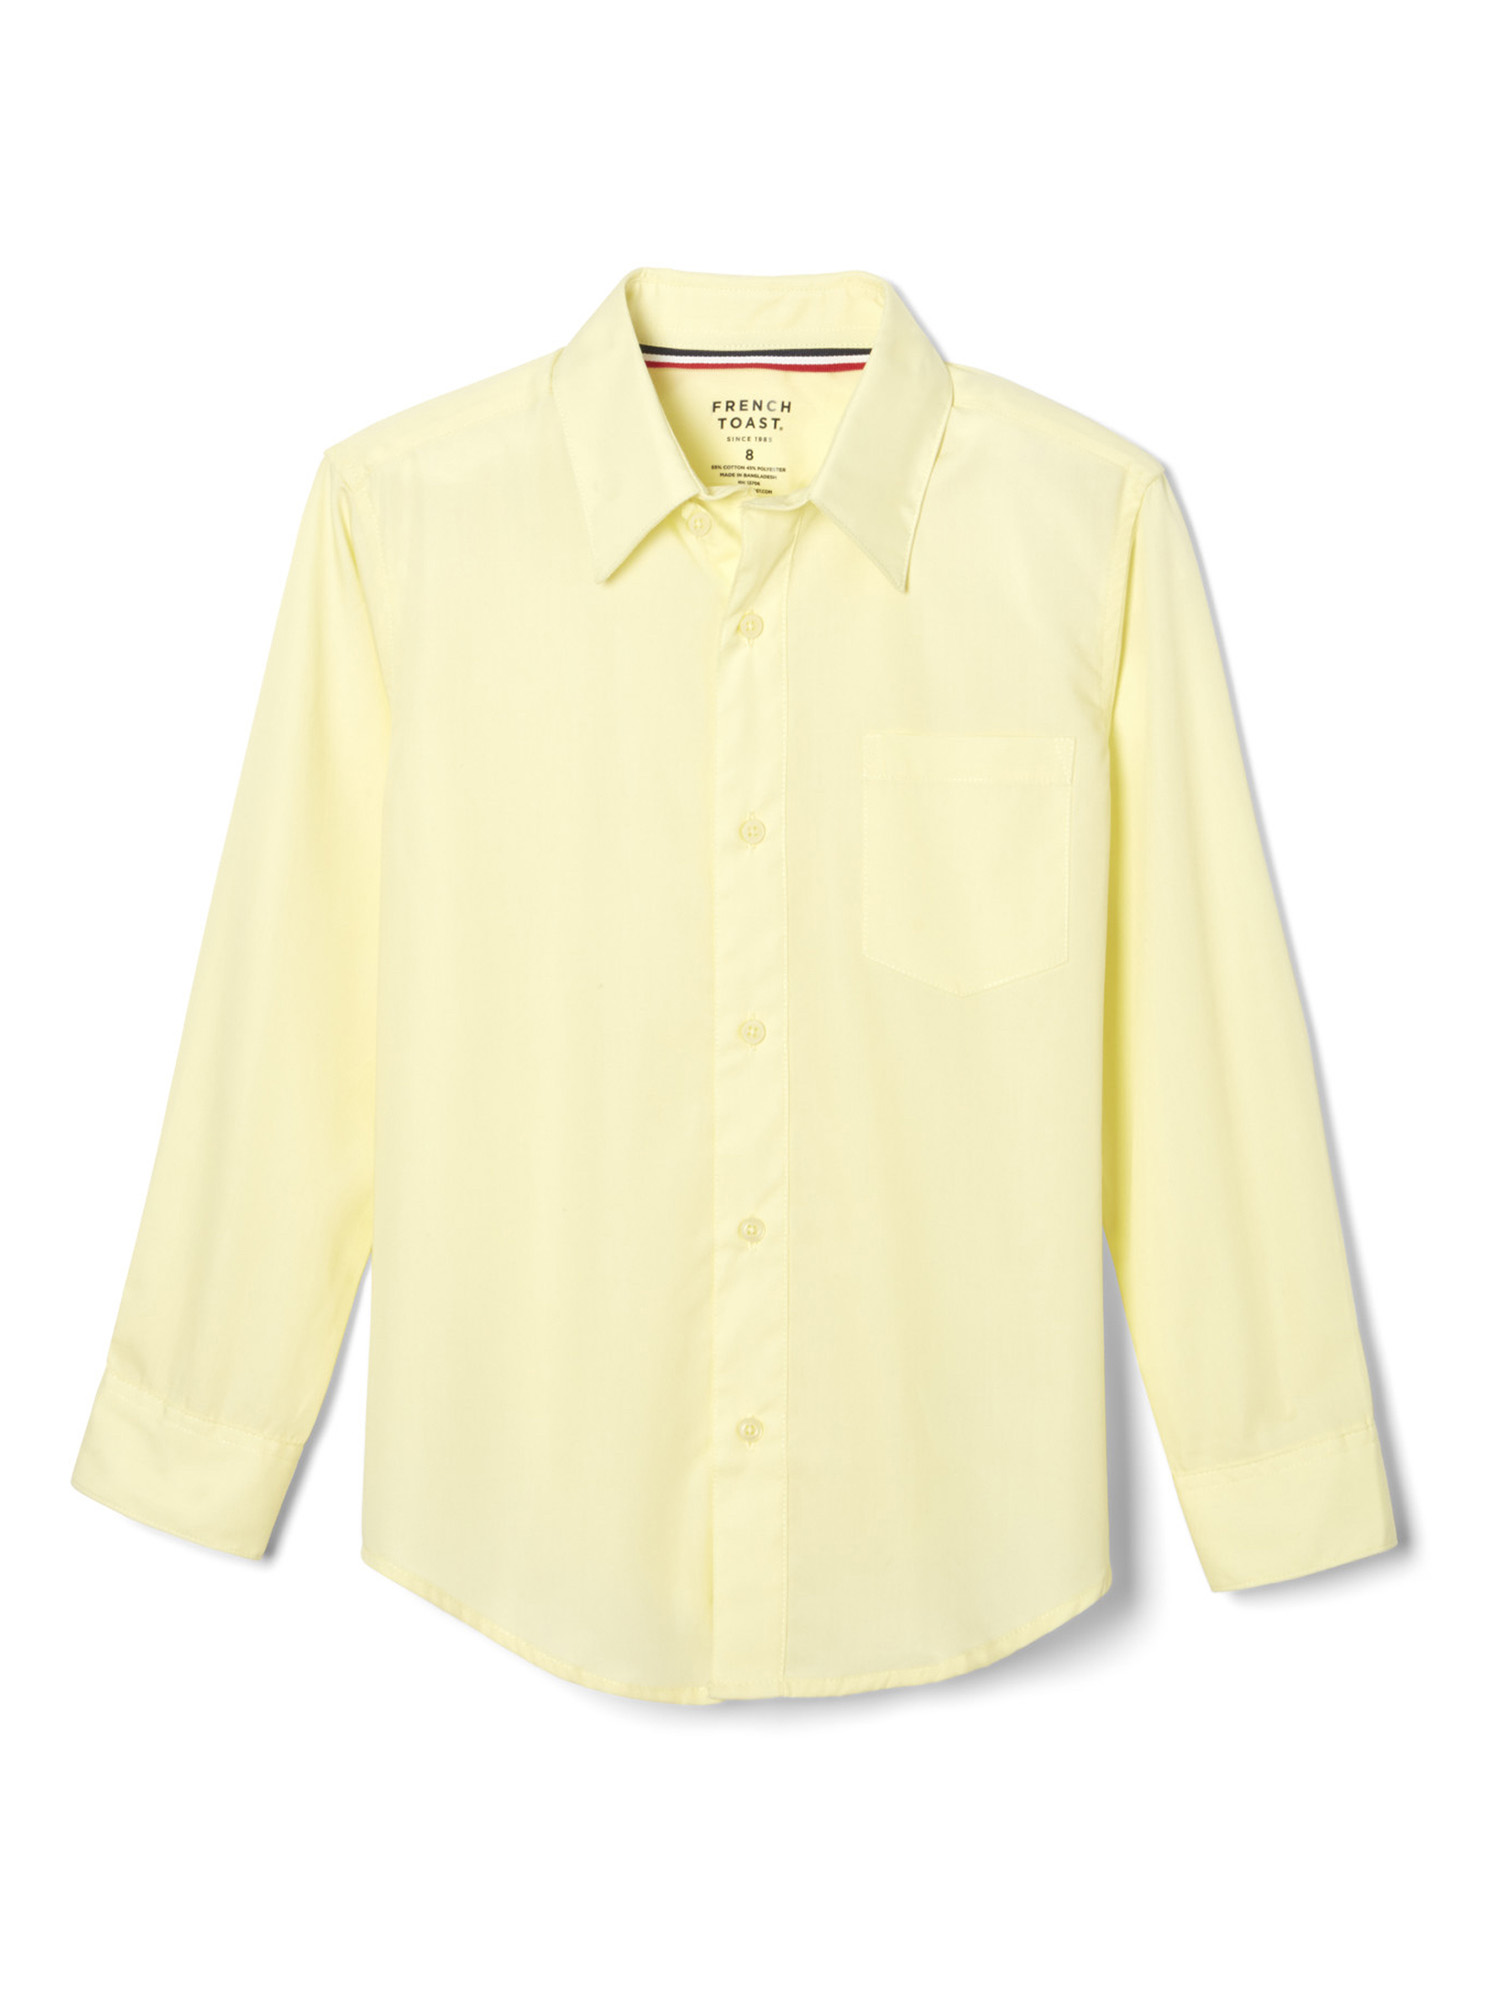 Big Boys Ivory Tie Long Sleeve Button Special Occasion Dress Shirt